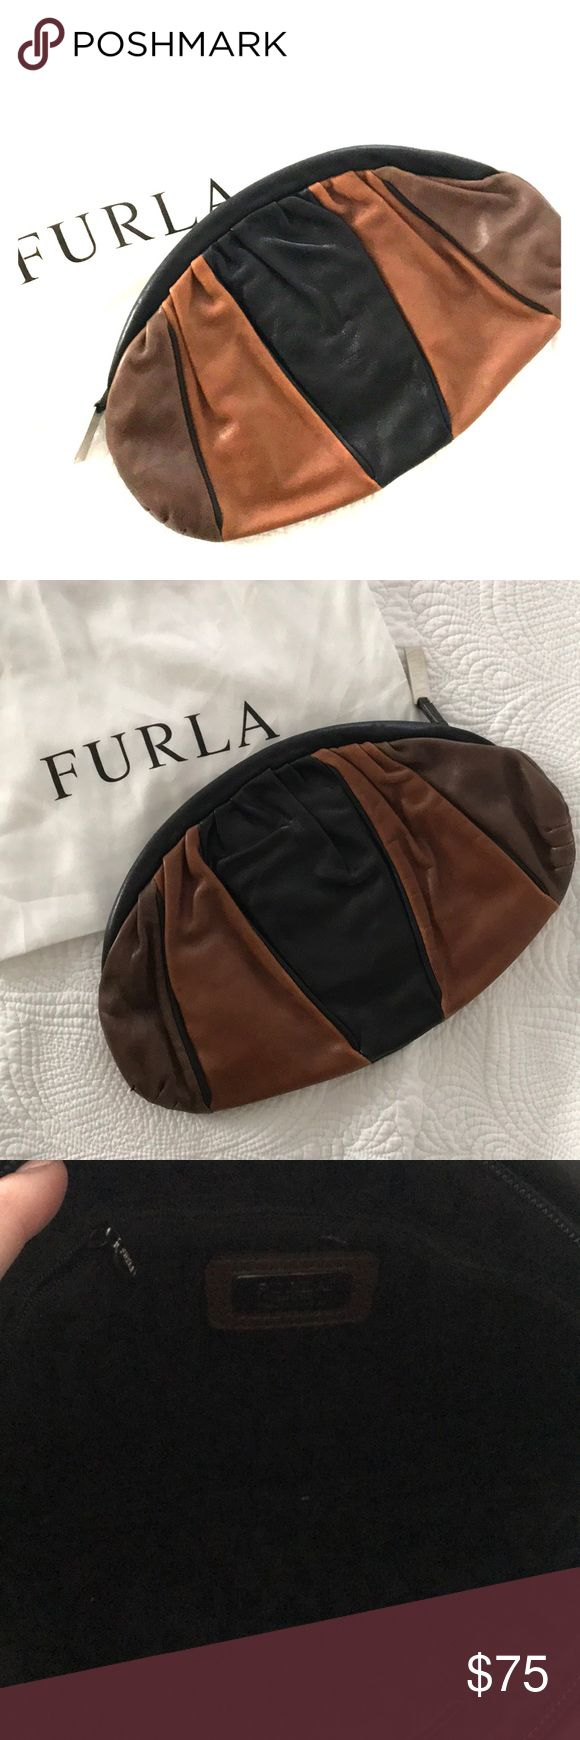 Furla clutch Like new! Used once. Perfect condition with cloth bag Furla Bags Clutches & Wristlets